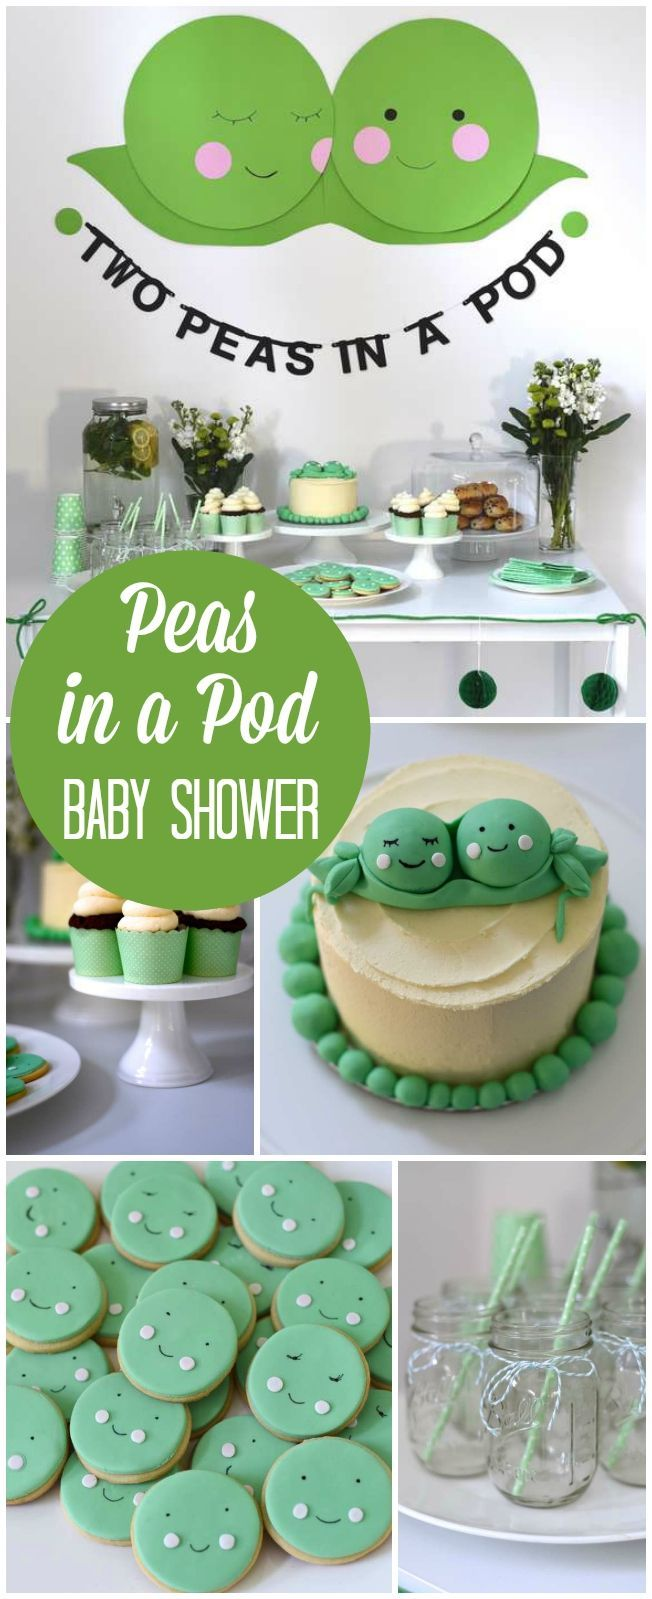 baby shower invitation for twins%0A Peas in a pod   Baby Shower    u    Two Peas in a pod u     a twin baby shower